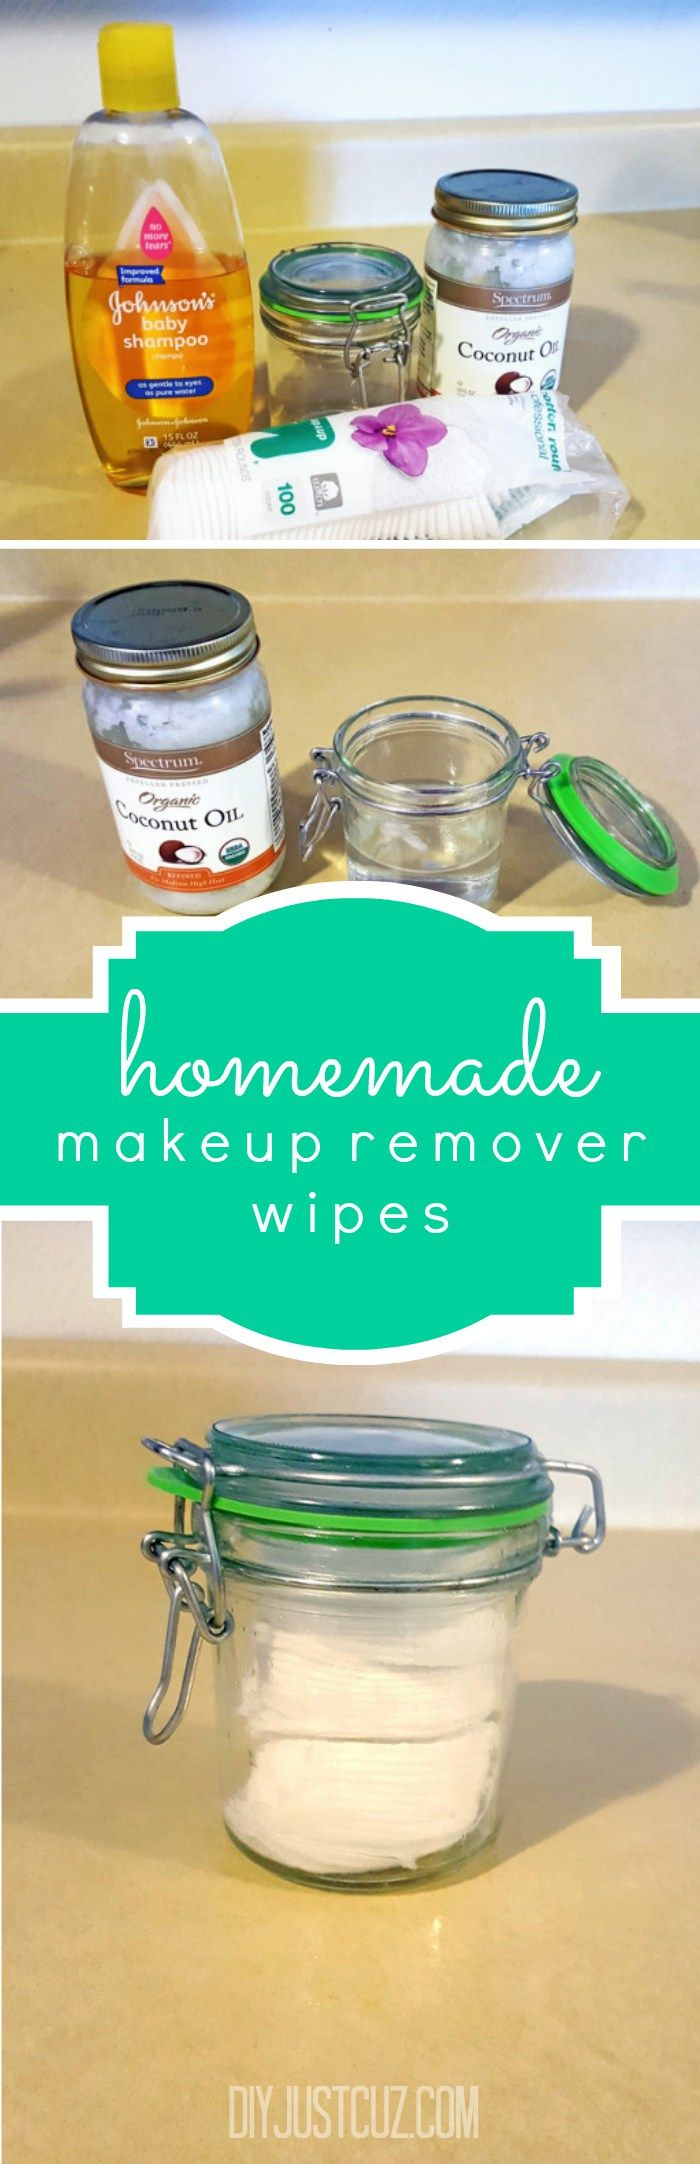 Stop spending money on expensive homemade makeup remover wipes full of chemicals. Learn how to make your own with a few things you already have in your house! @diyjustcuz